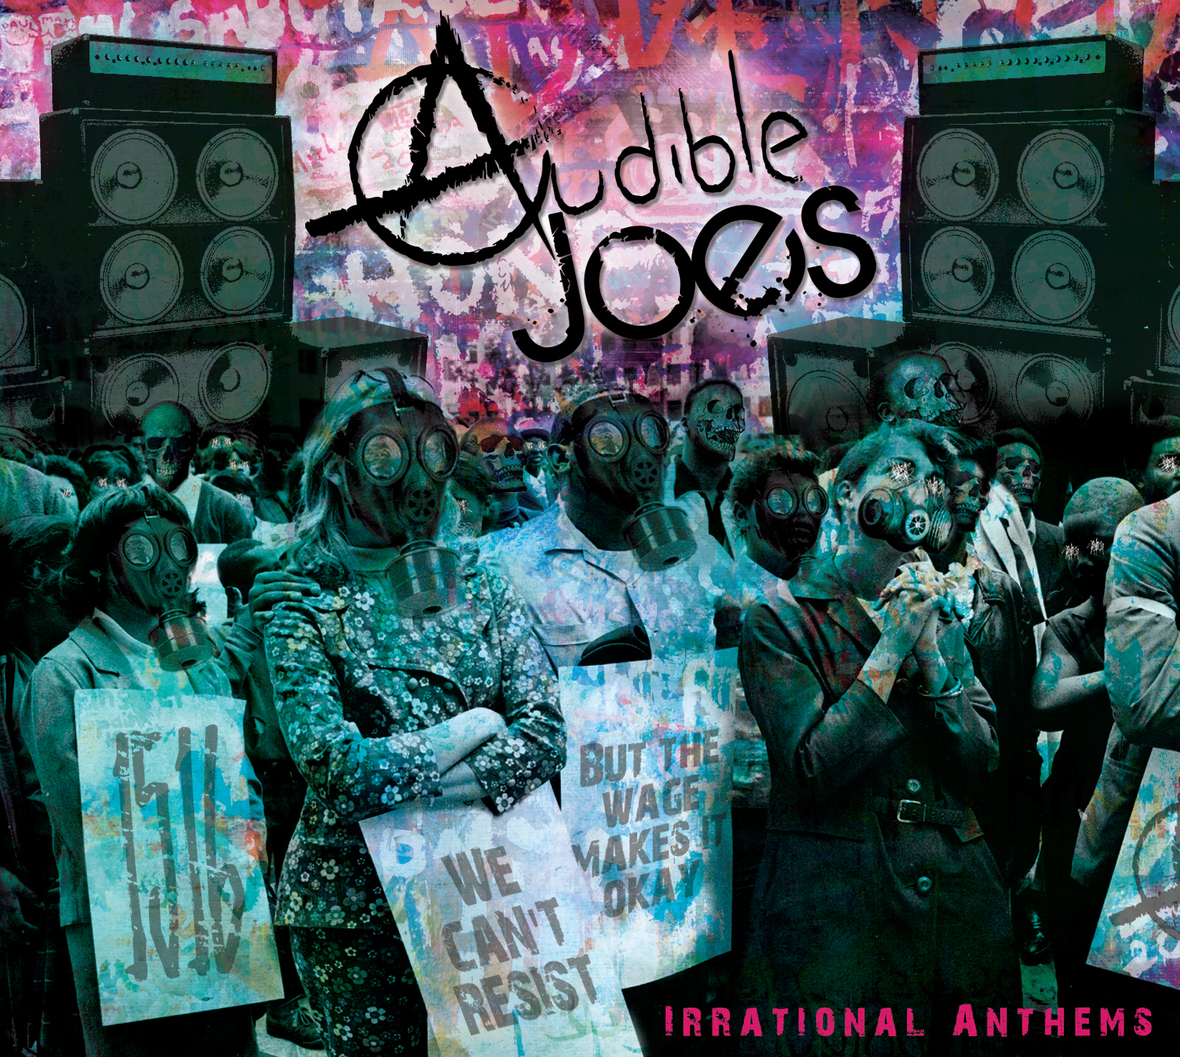 Audible Joes Irrational Anthems